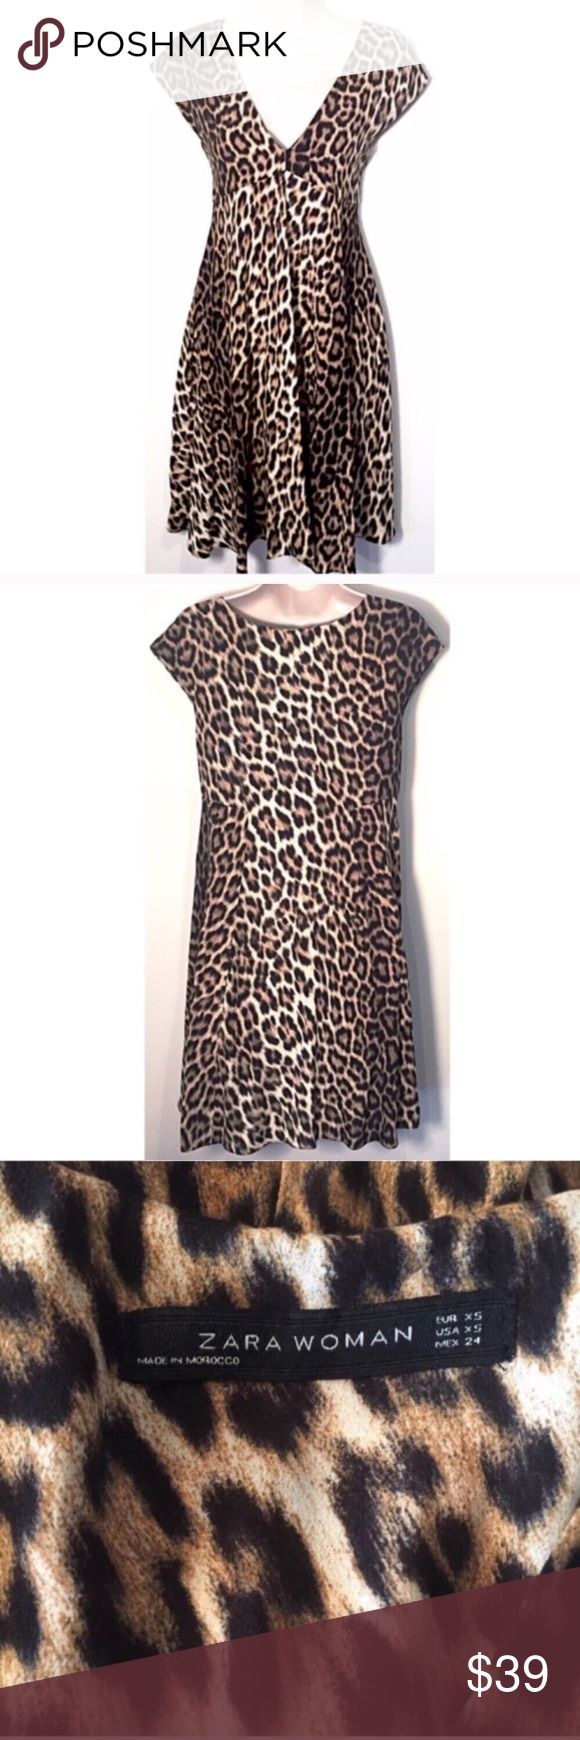 "❣BOGO 1/2 off❣🆕 Zara leopard print mini dress xs Flawless/like-new condition. Leopard animal print mini sheath dress. 100% lightweight viscose, no stretch. Fully lined bust. Extra small. Measures 35"" long, 17"" flat across bust, & 22"" flat across waist. Dry clean. Last photo shown for fit. ❣Ask me how to BOGO HALF price! ✖️I do NOT MODEL✖️ 🔴Bundle to save! 🔴NO TRADES. 🔴REASONABLE offers welcome via offer button. 🔴Smoke-free home. Fast shipping! Zara Dresses Mini"